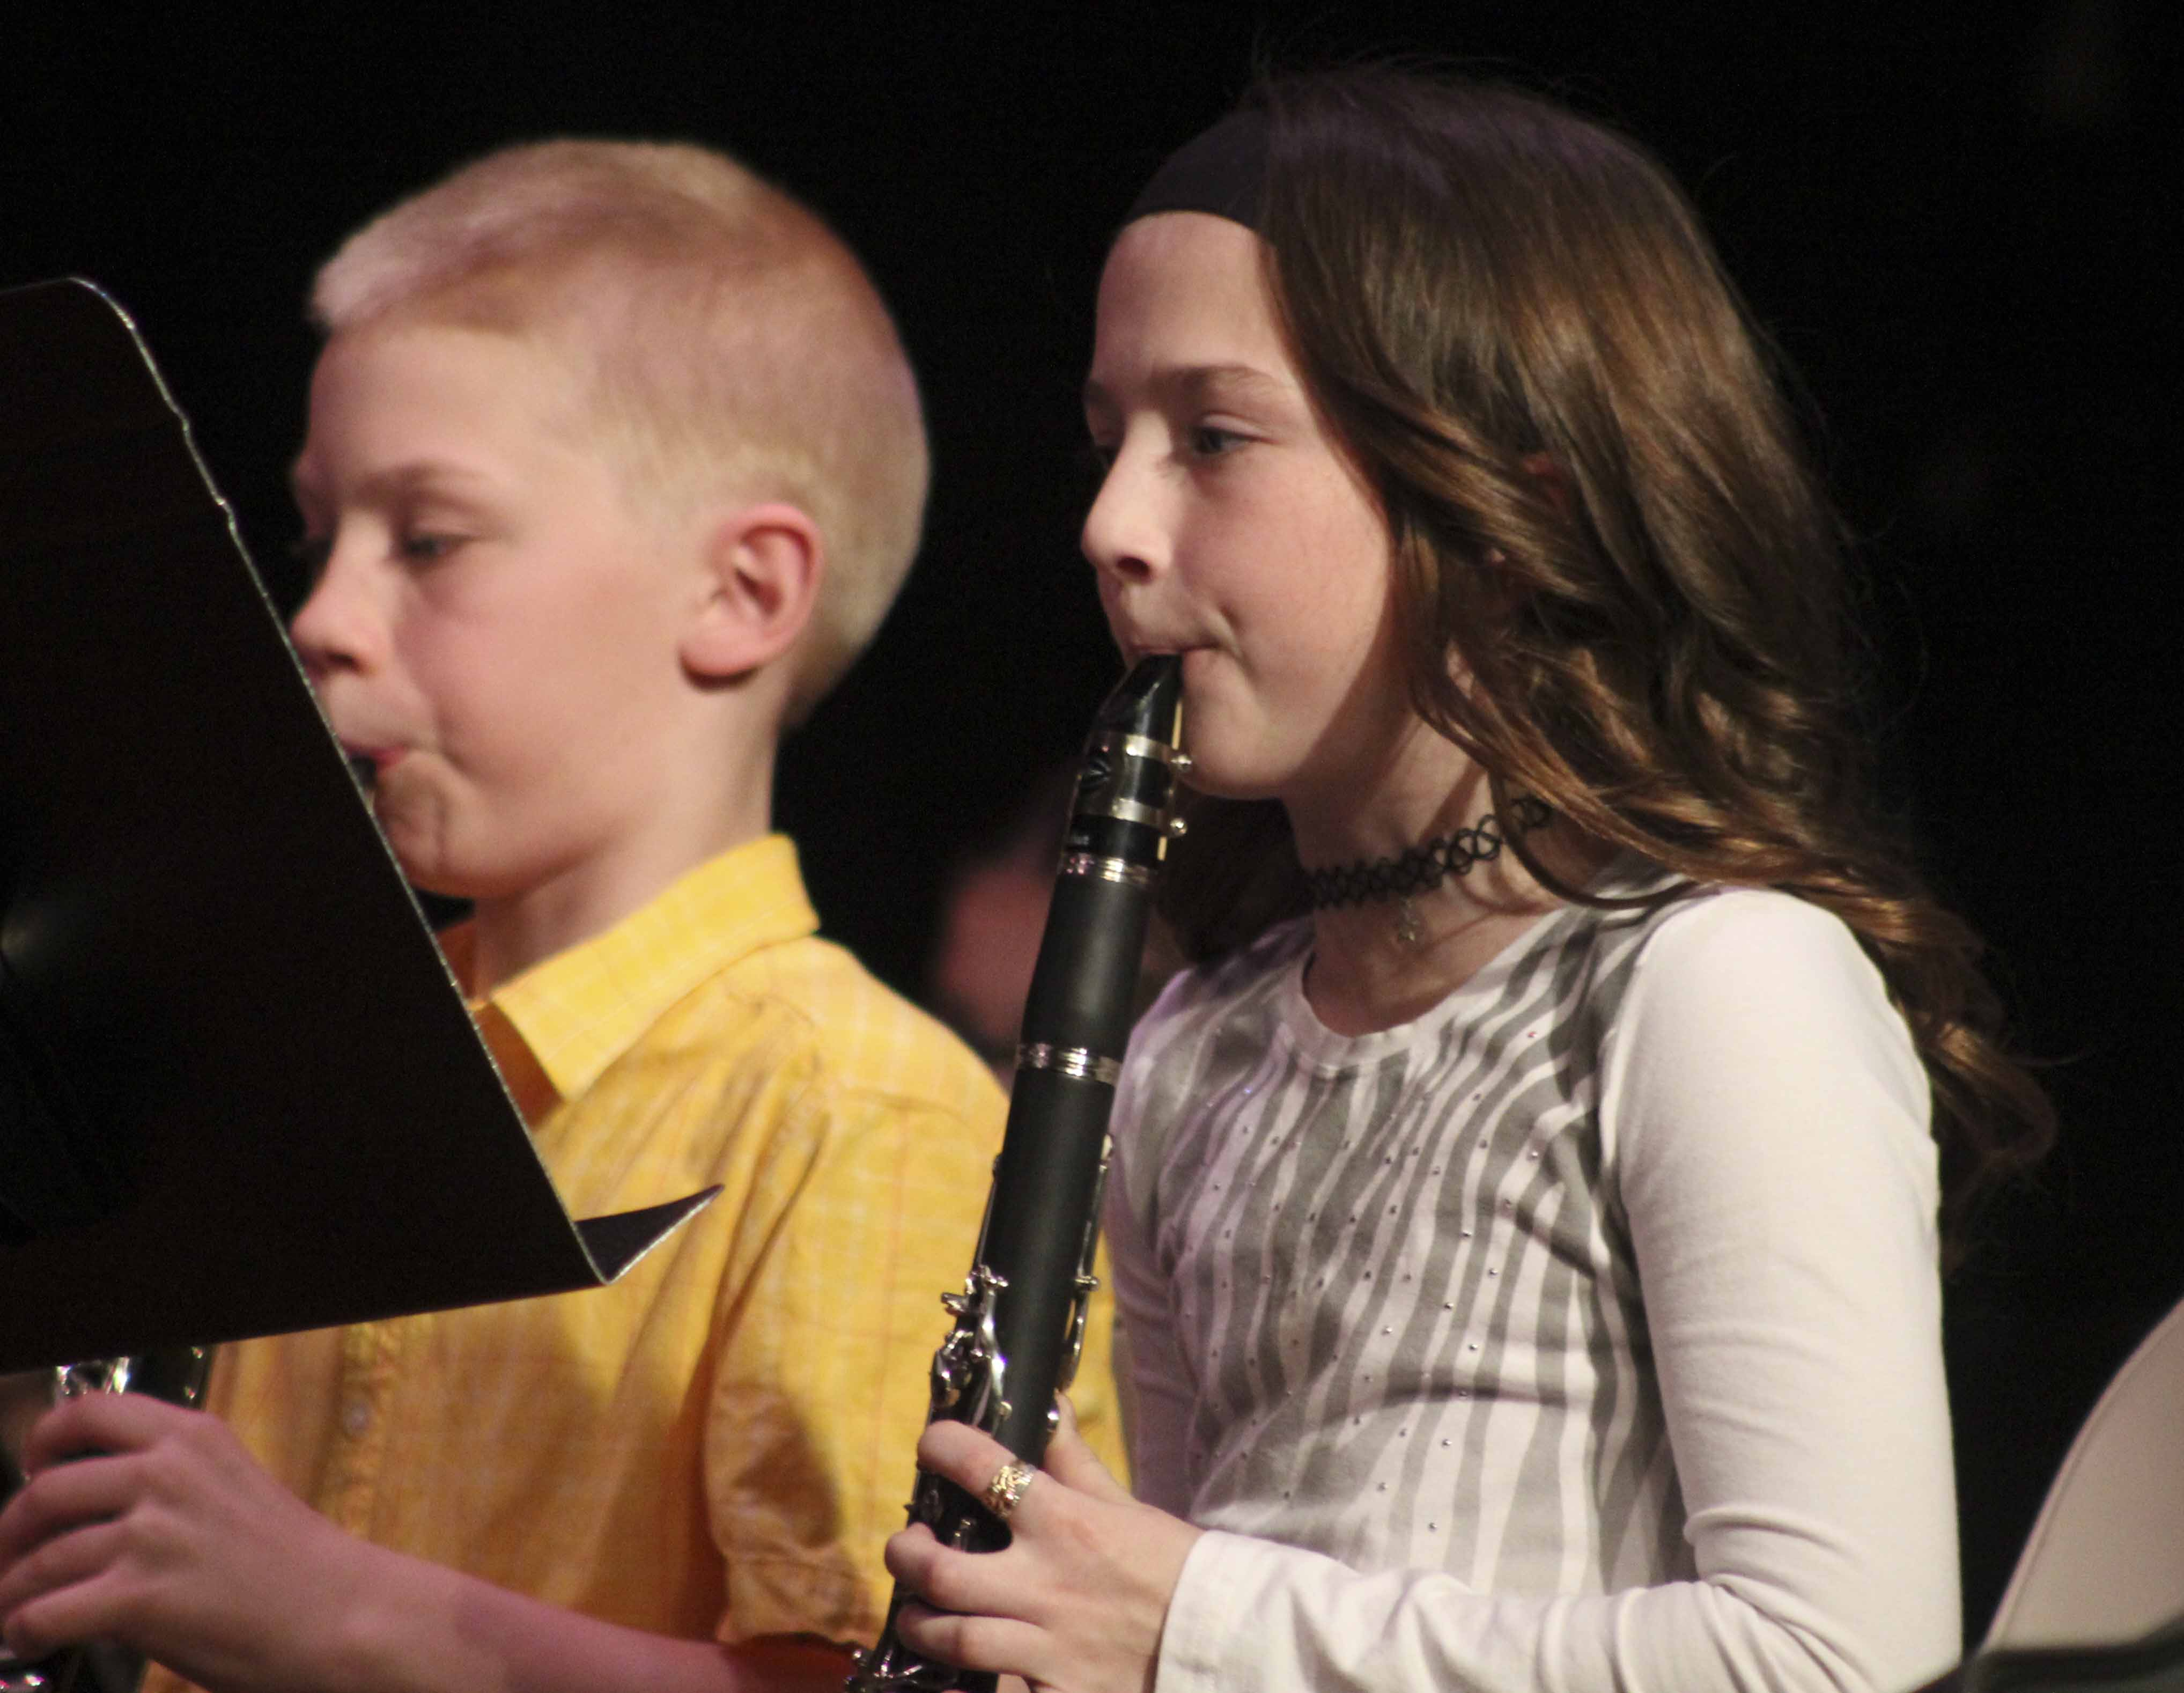 Playing clarinet with the fifth-grade band at the March 7 concert are Carter Martin (left) and Kendra Jacobs.